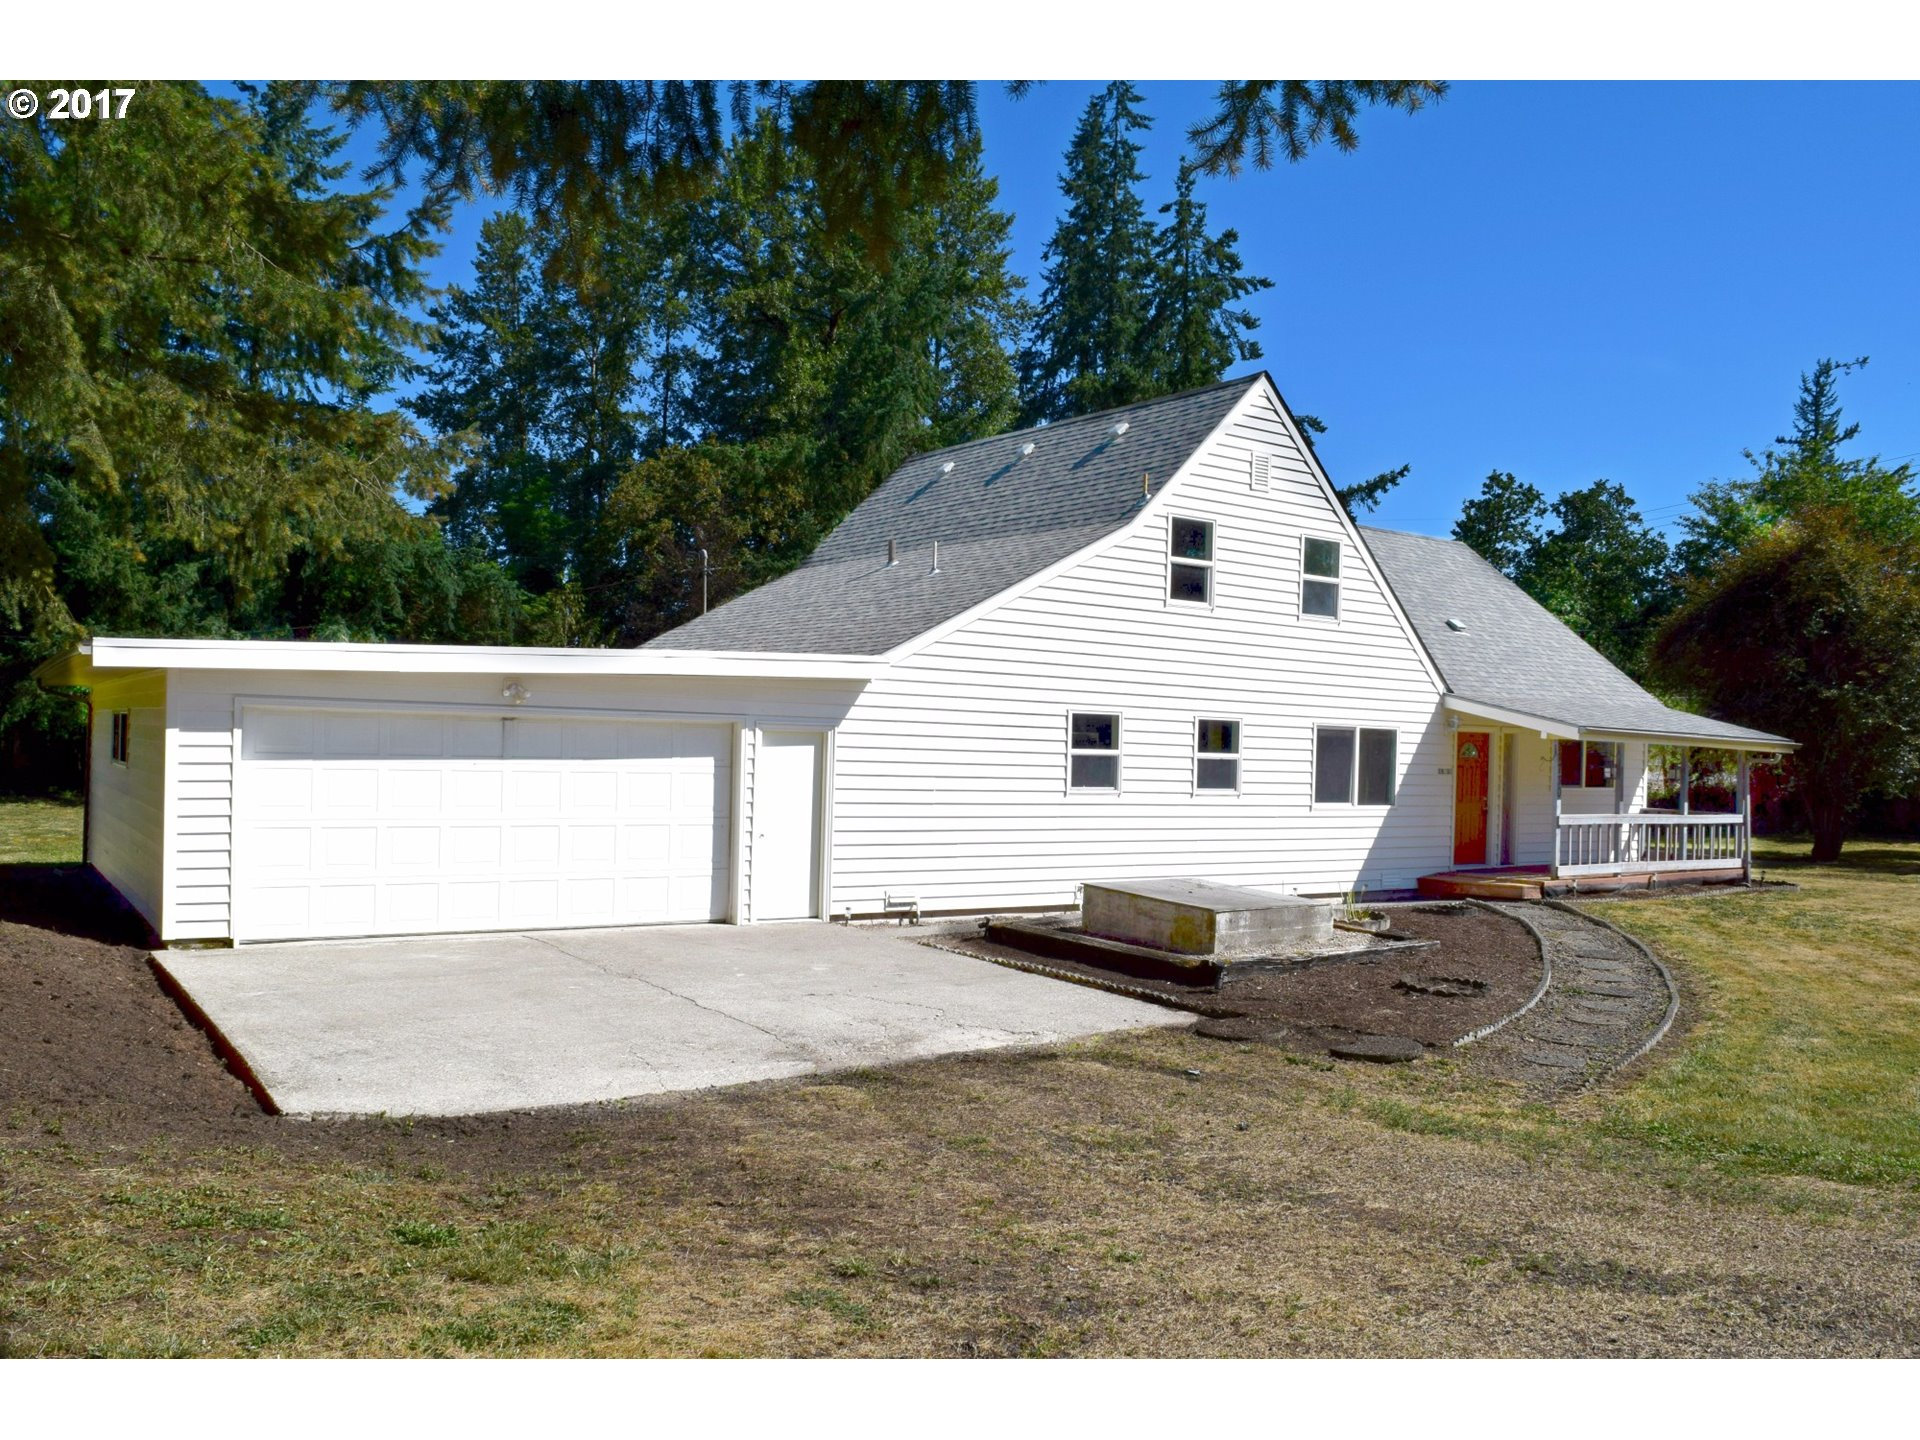 28730 SANTIAM HWY, Sweet Home, OR 97386